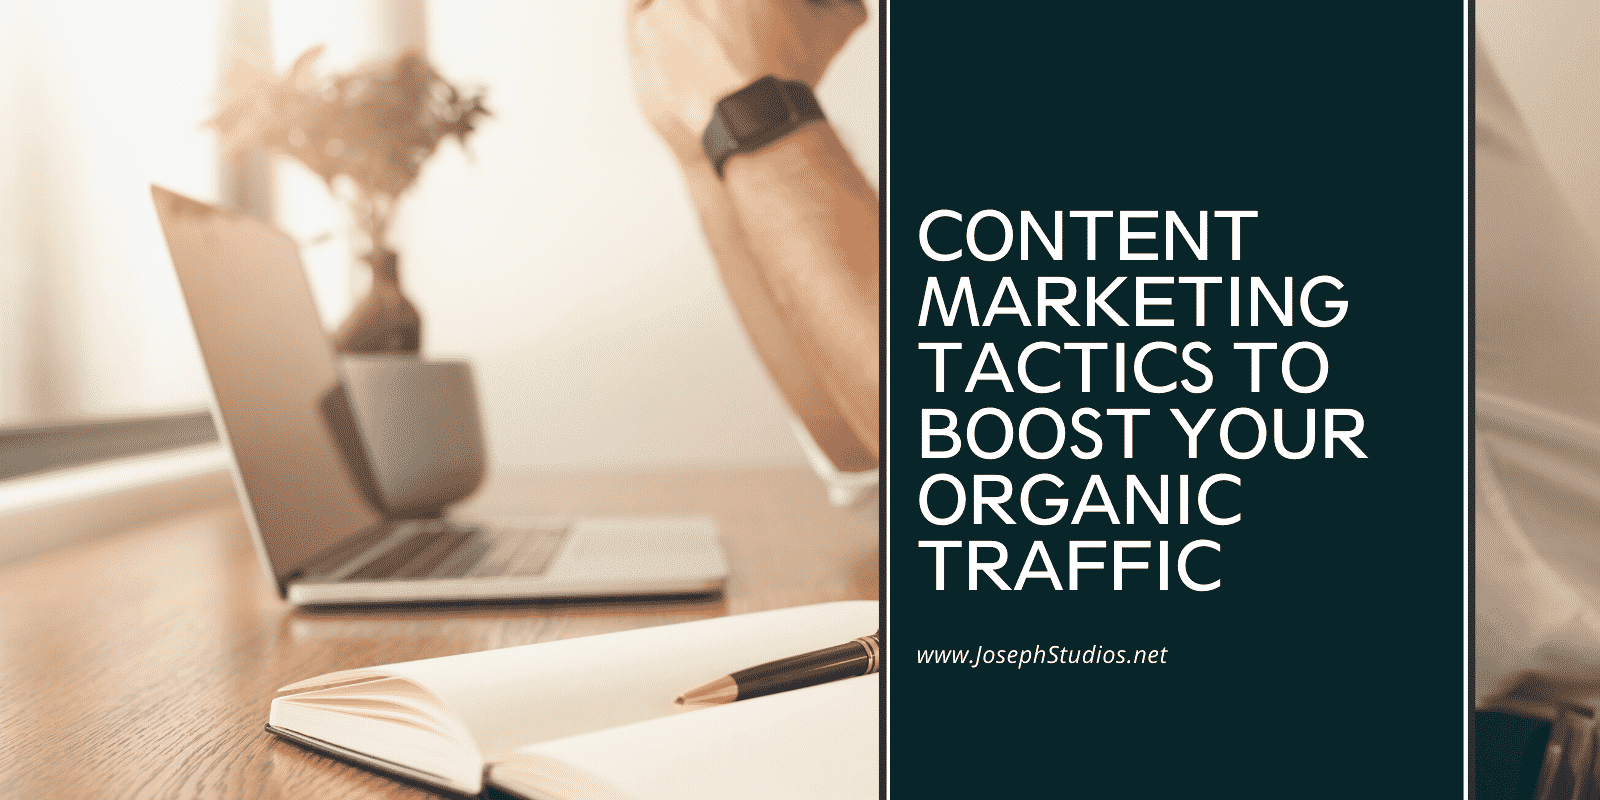 Content Marketing Tactics to Boost Your Organic Traffic